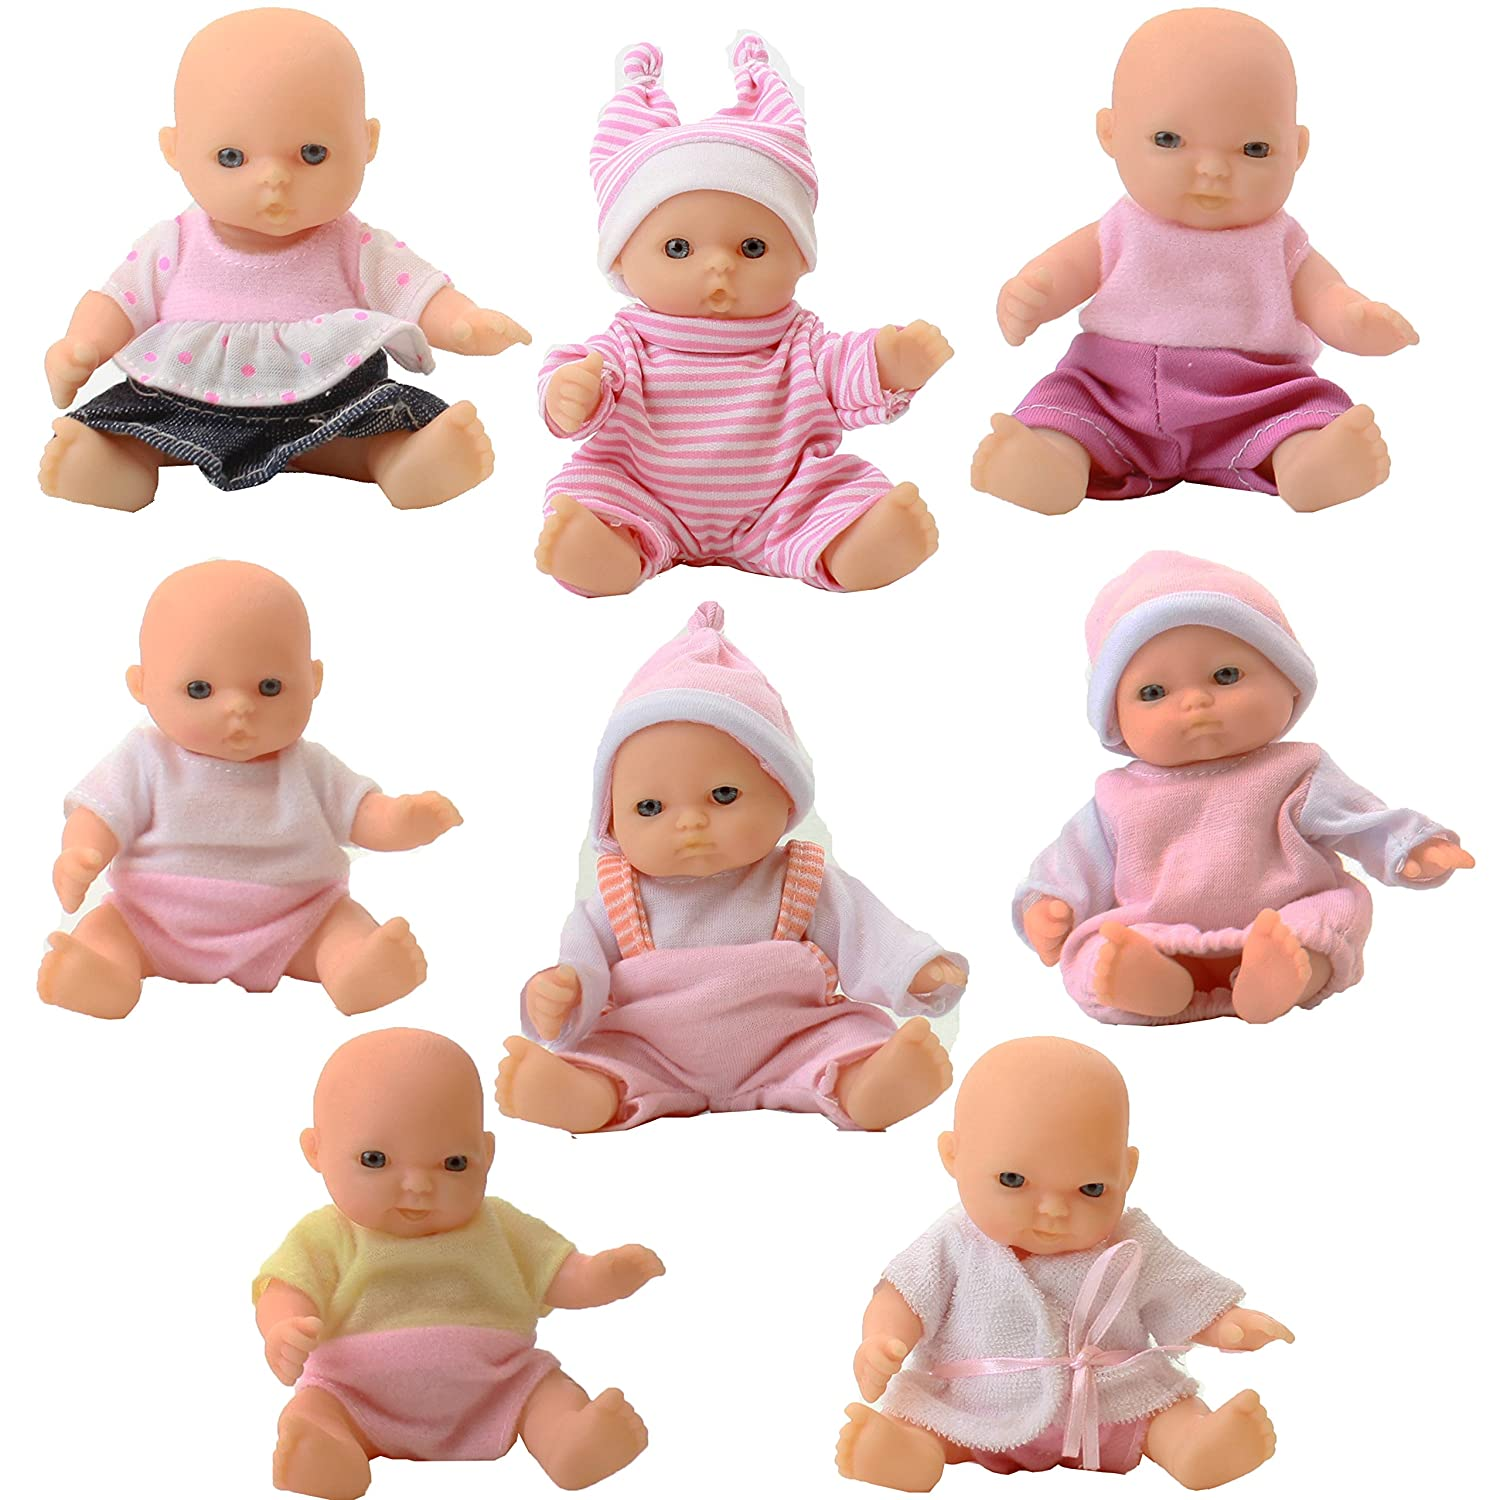 8 Huggable and Cute Mini Dolls Image